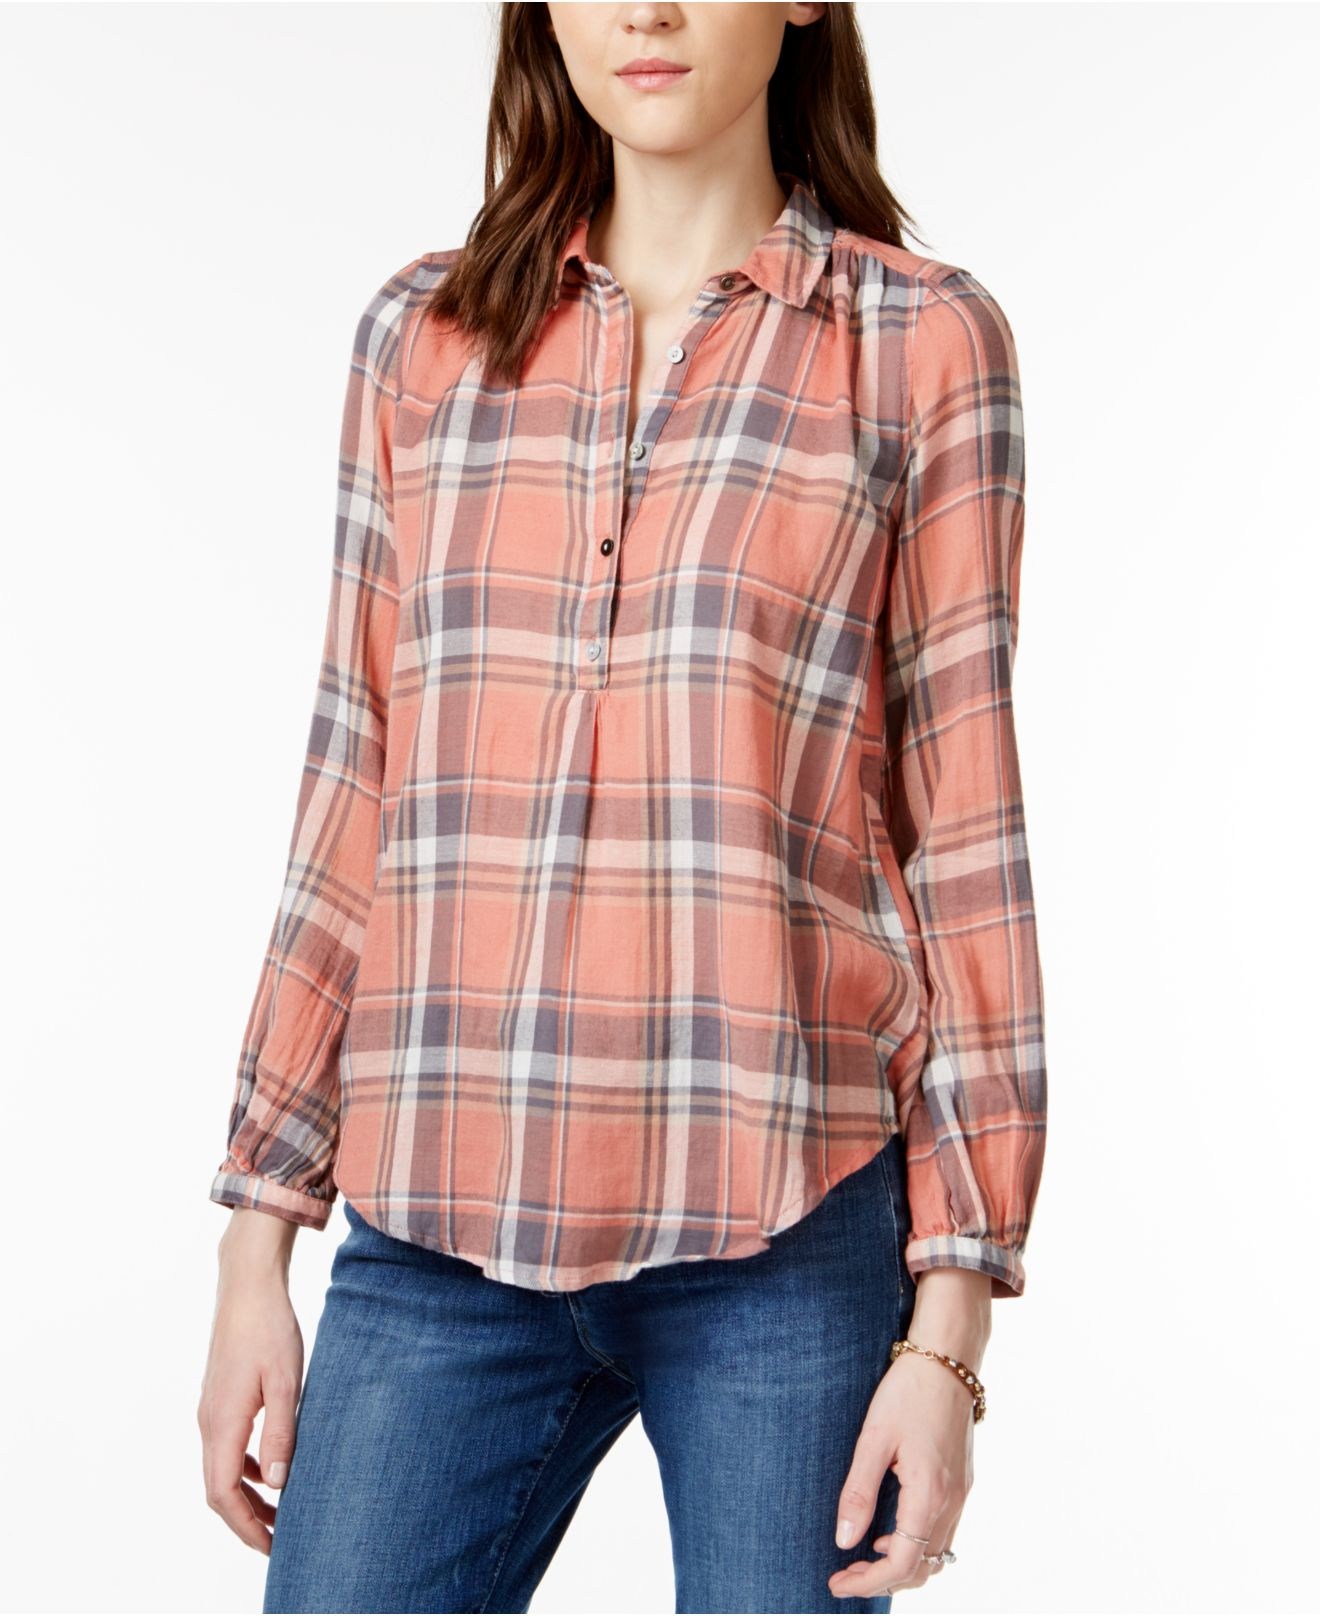 Lucky brand Plaid Pullover Shirt in Pink | Lyst